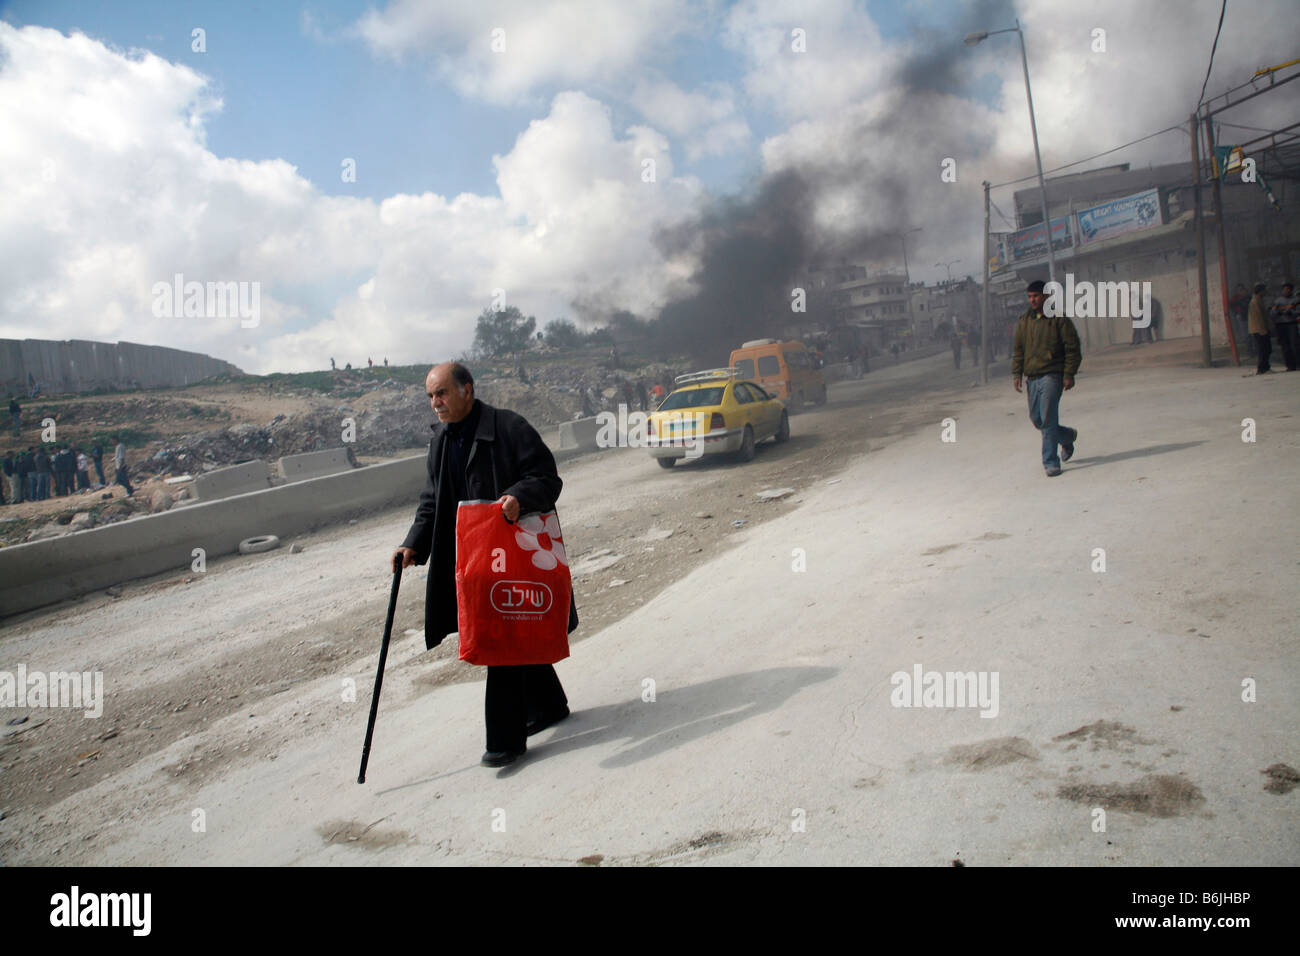 A Palestinian man walks past smoke from burning tyres near the Qalandiya checkpoint just north of Jerusalem in the - Stock Image